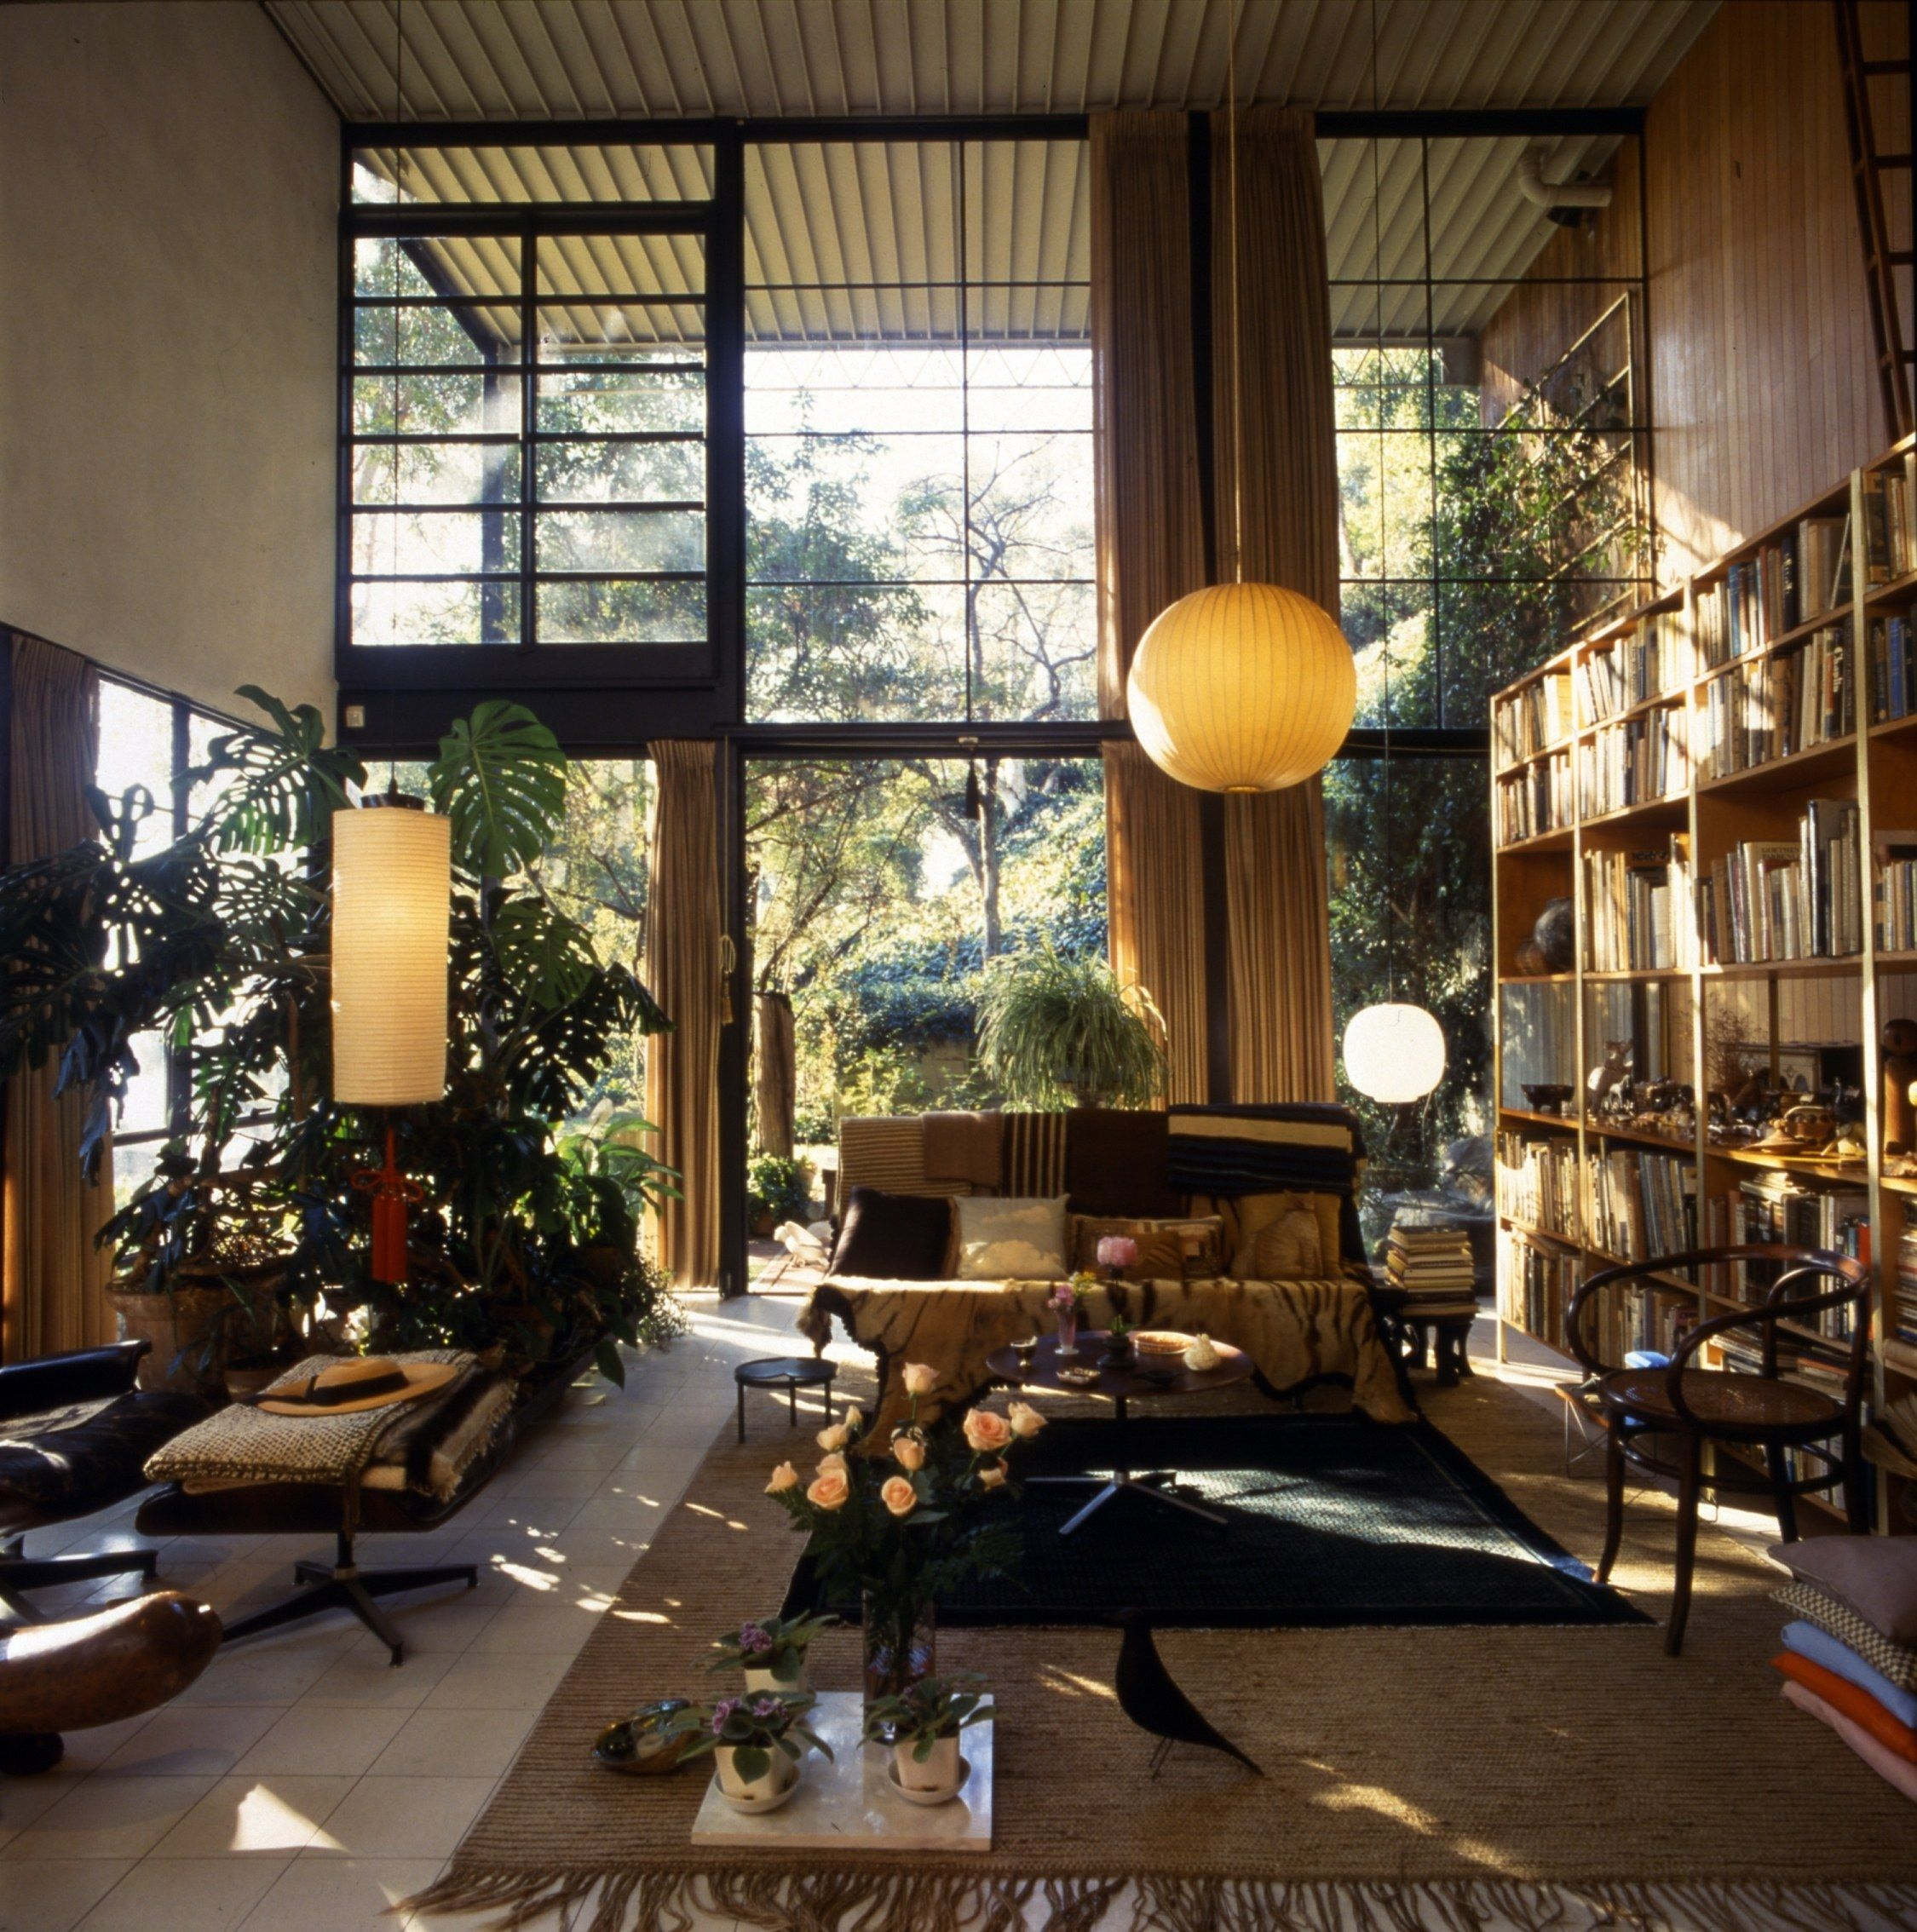 Ray & Charles Eames Home Architectural Digest #dolistsorbooks